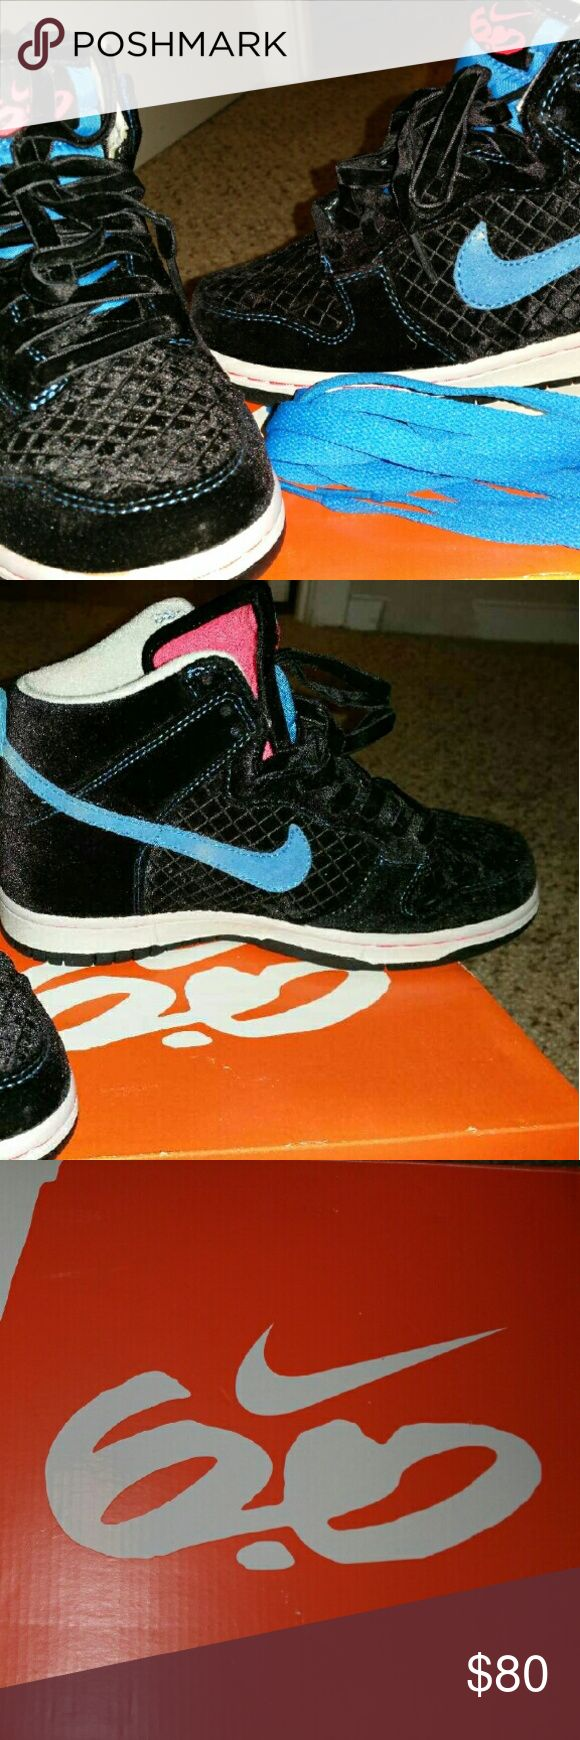 Womans Nike dunk high 6.0 Velvet texture black with blue stitching Nike dunk high 6.0  Blue shoe laces included  Mint condition  Worn once Nike Shoes Sneakers